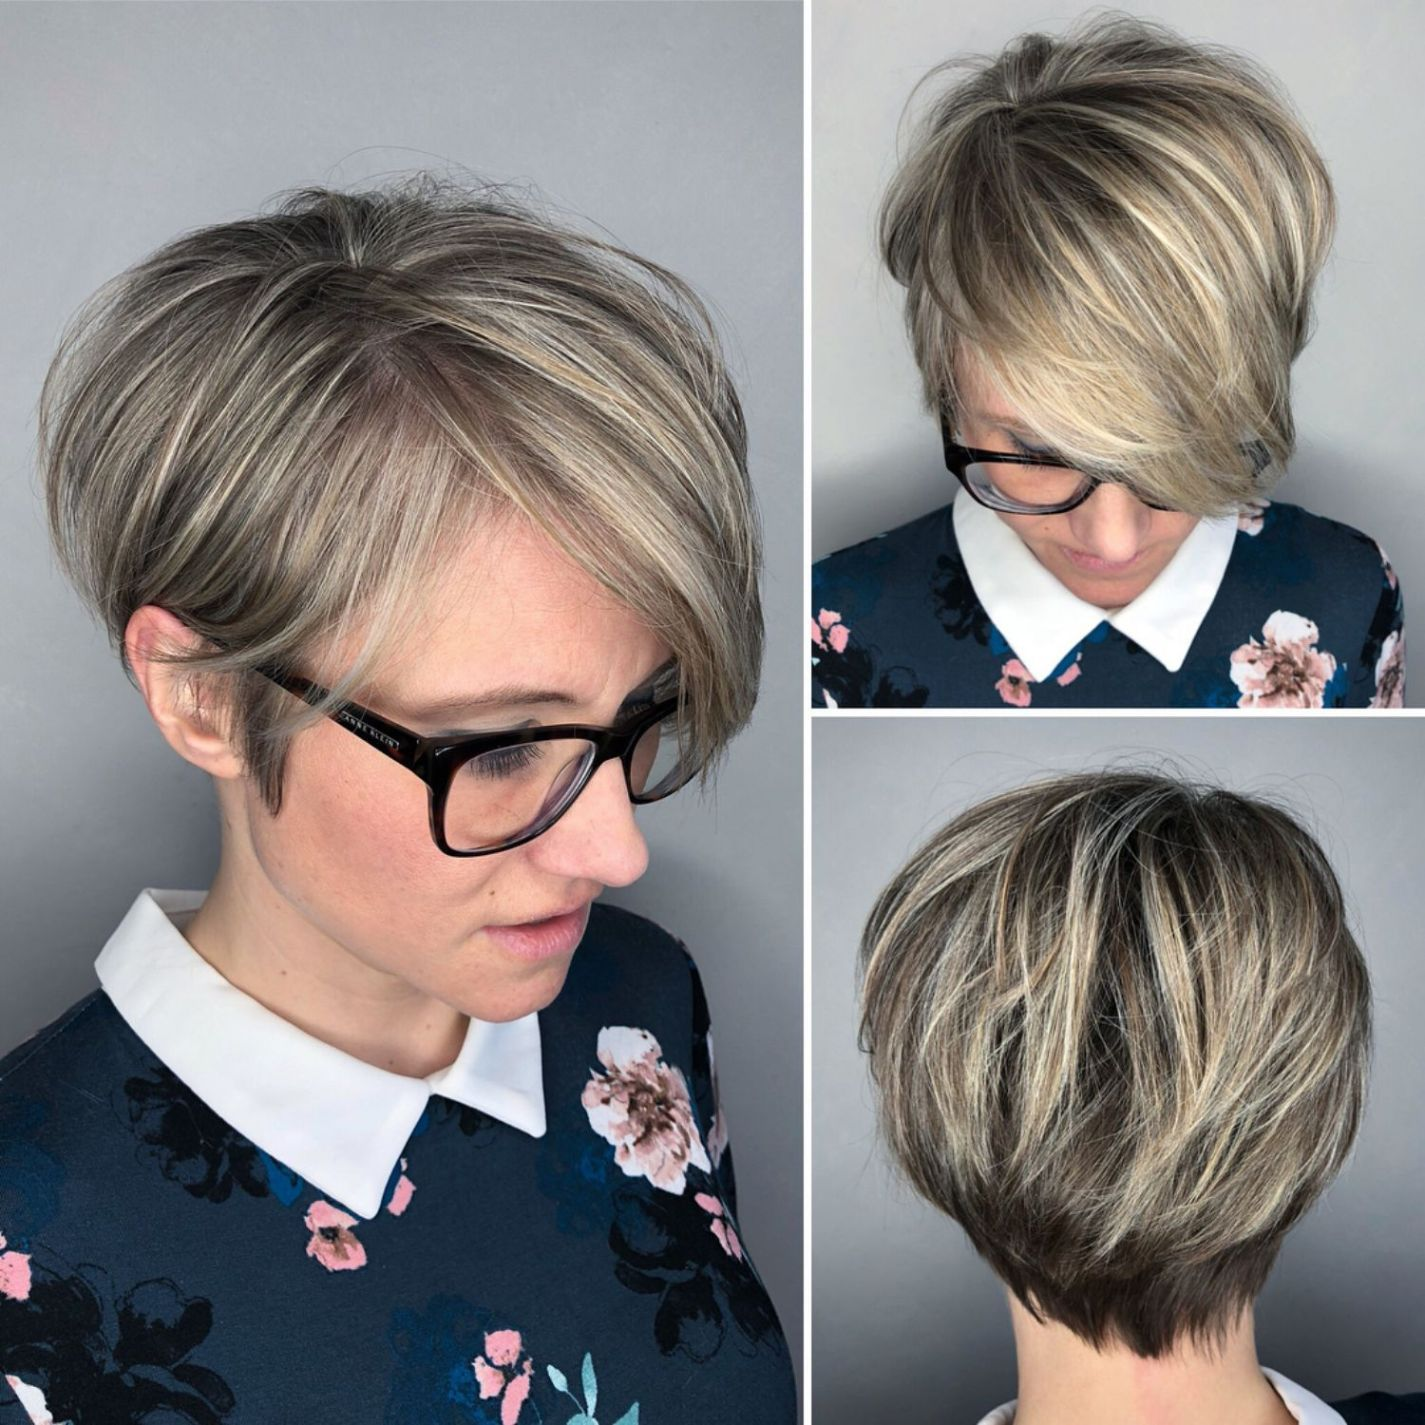 60 Gorgeous Long Pixie Hairstyles Long Pixie Hairstyles Longer Pixie Haircut Pixie Hairstyles